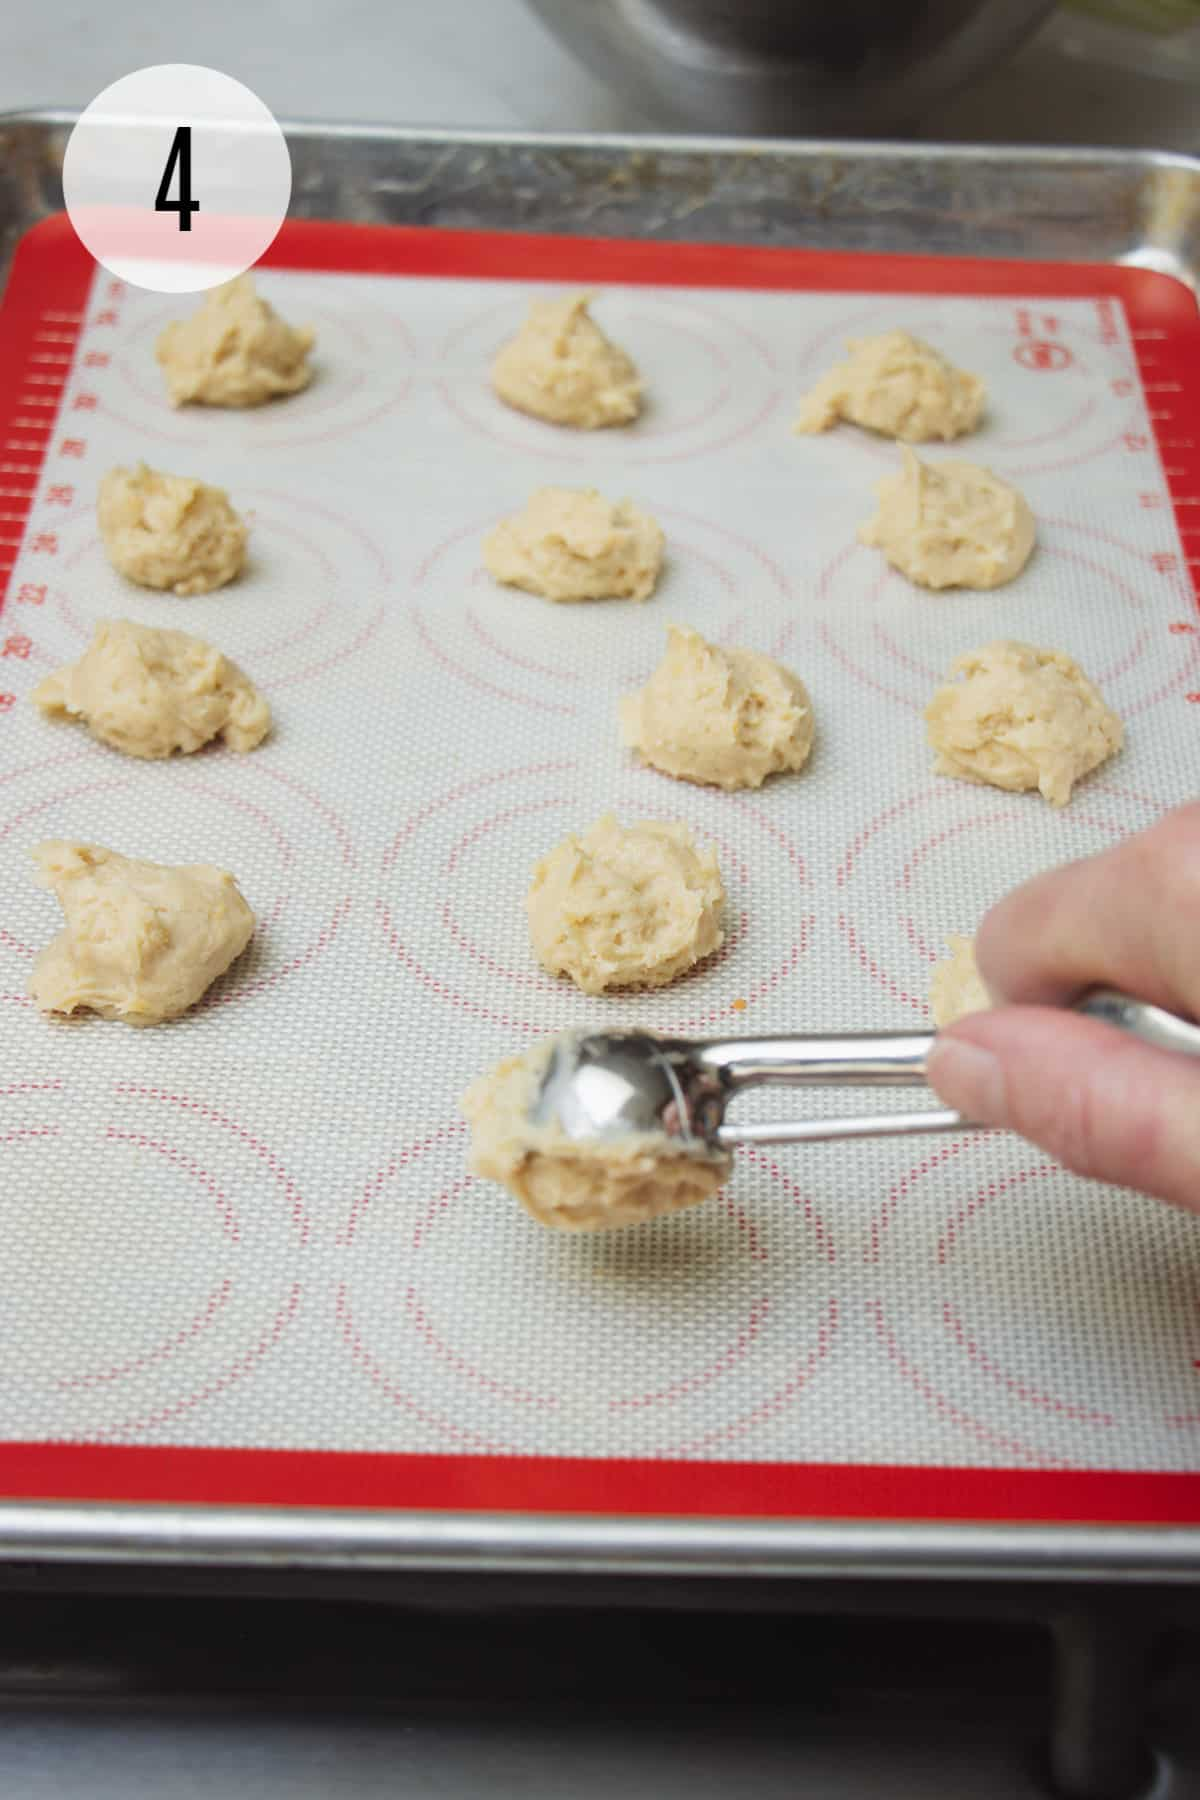 Scoop dropping cookie dough on to a red and white silicone baking mat with cookie dough balls on tray.